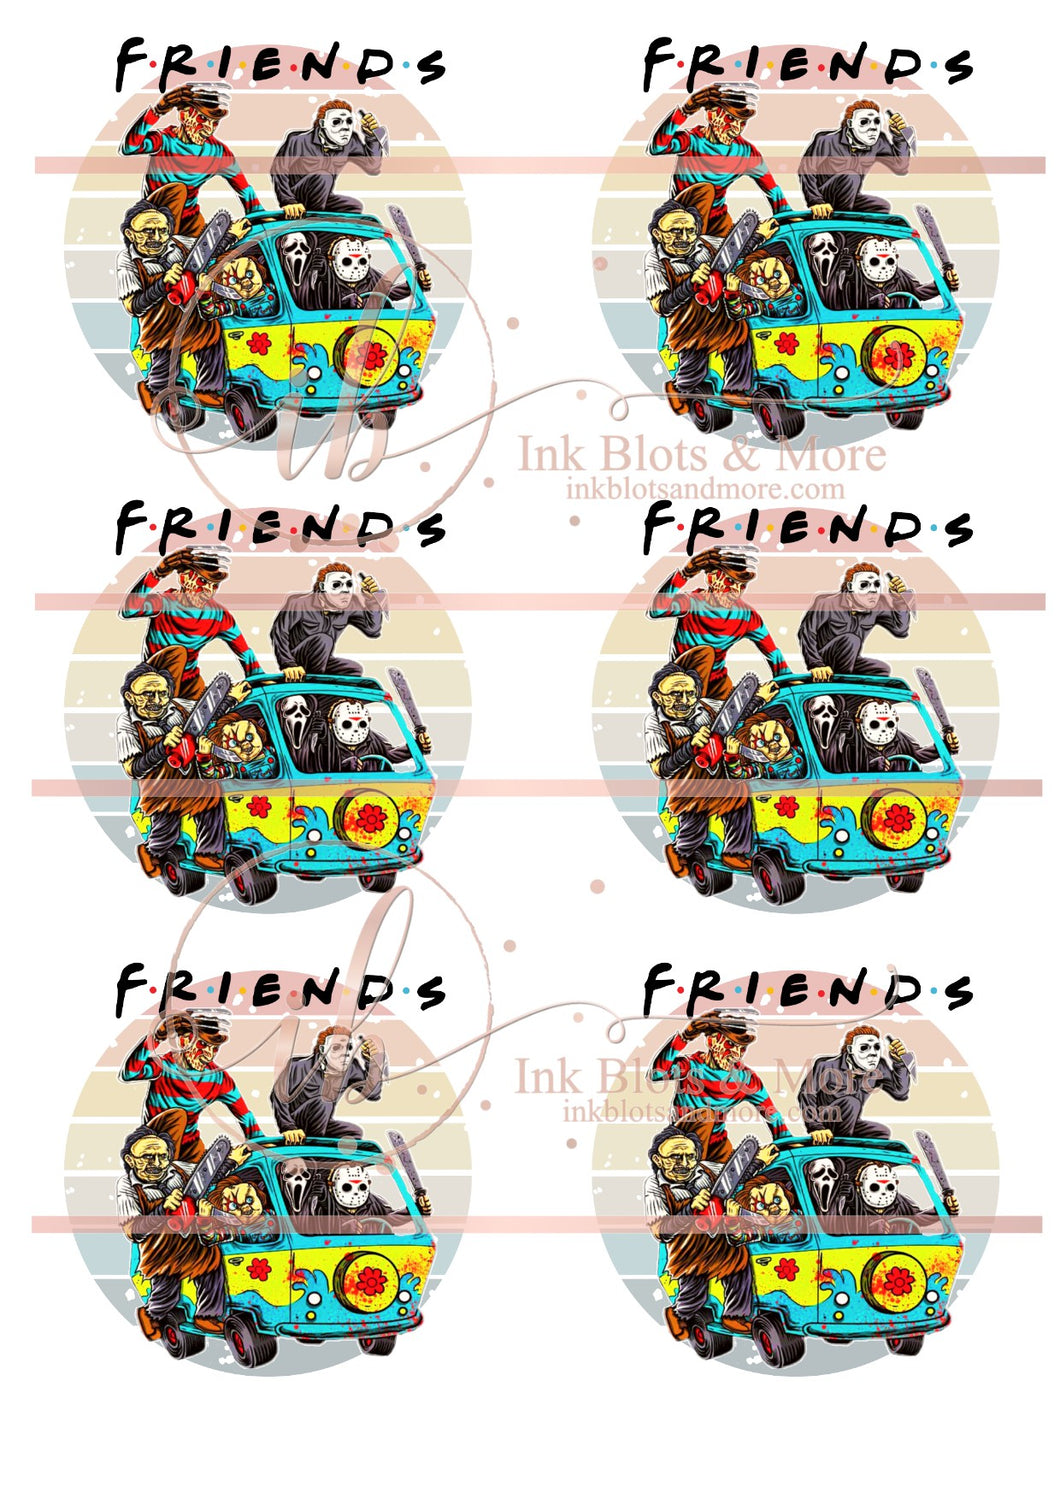 Friends Scooby Van